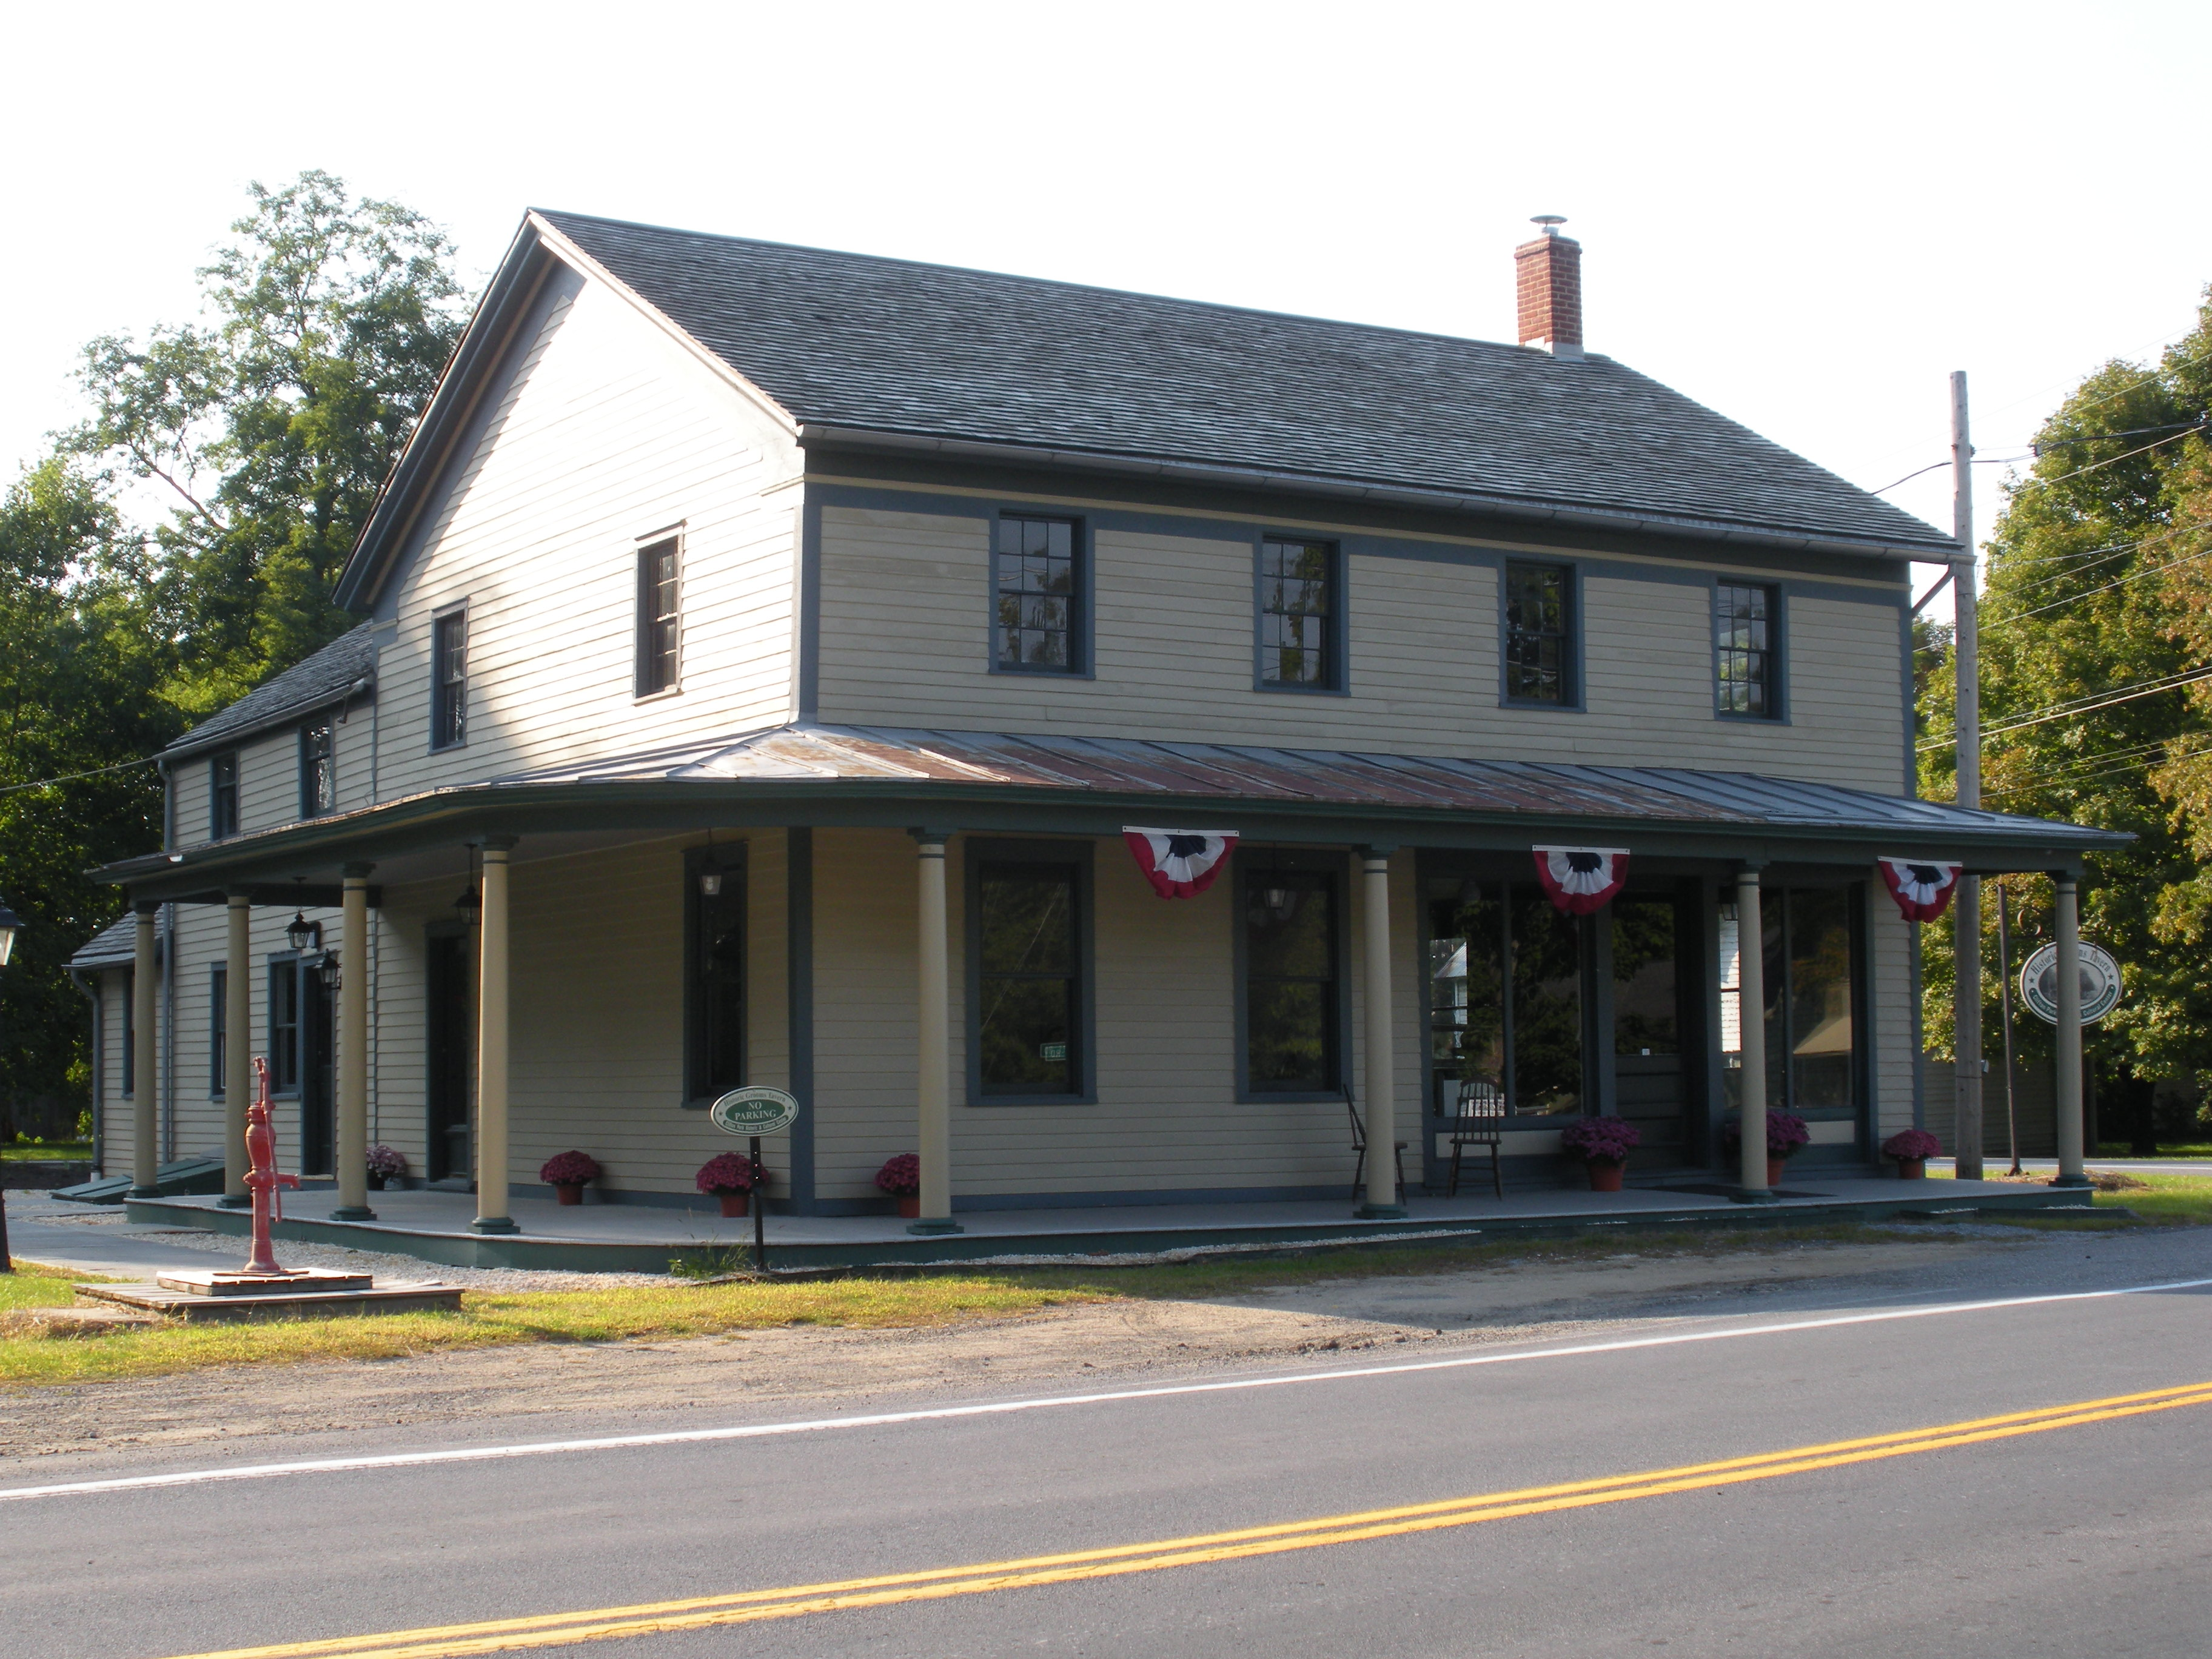 Historic Grooms Tavern